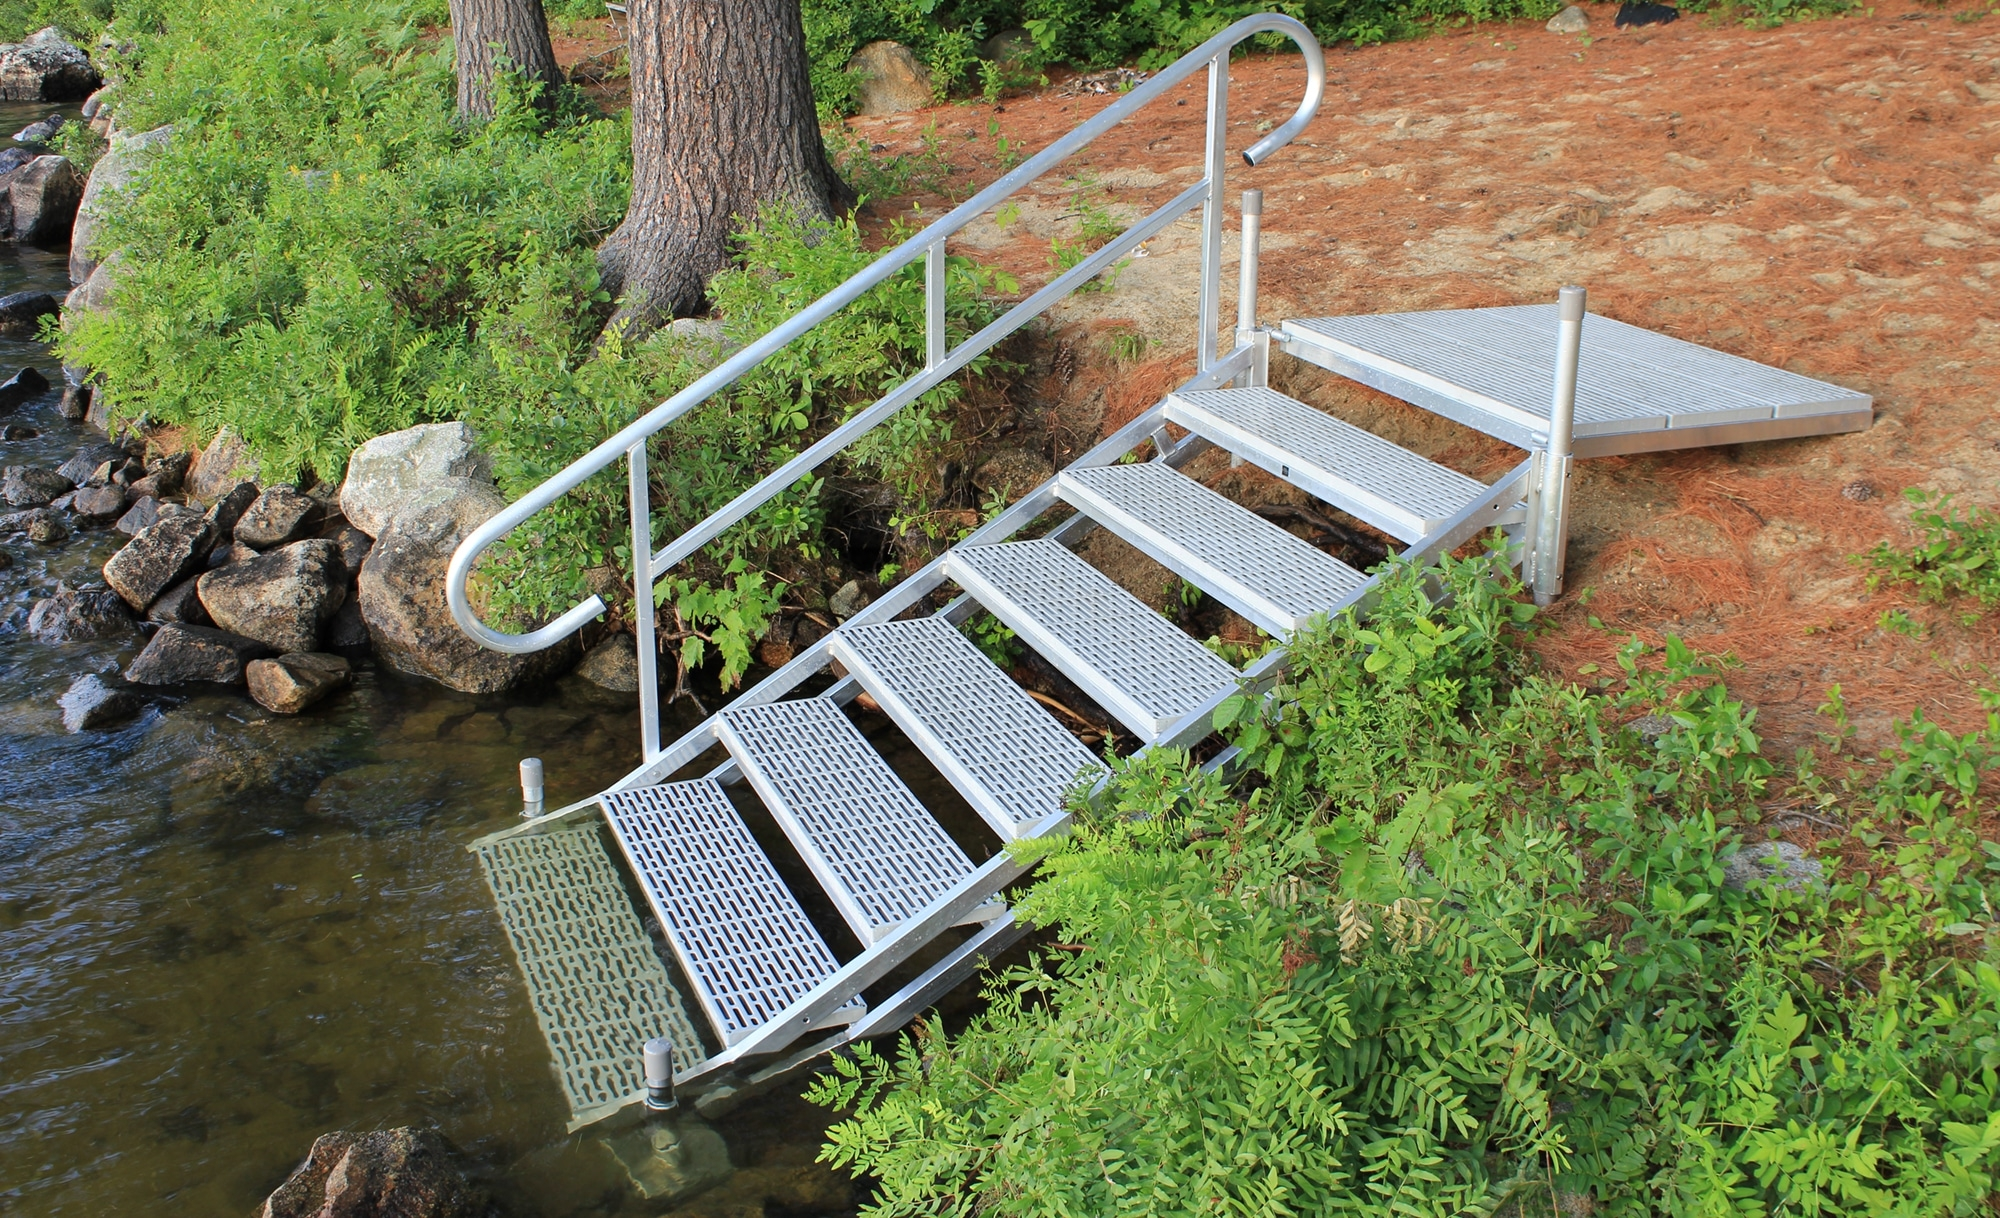 Aluminum Dock Stairs Great Northern Docks   Aluminum Steps With Handrail   Boat Dock   Wheelchair Ramp   Stair Treads   Folding   Stair System